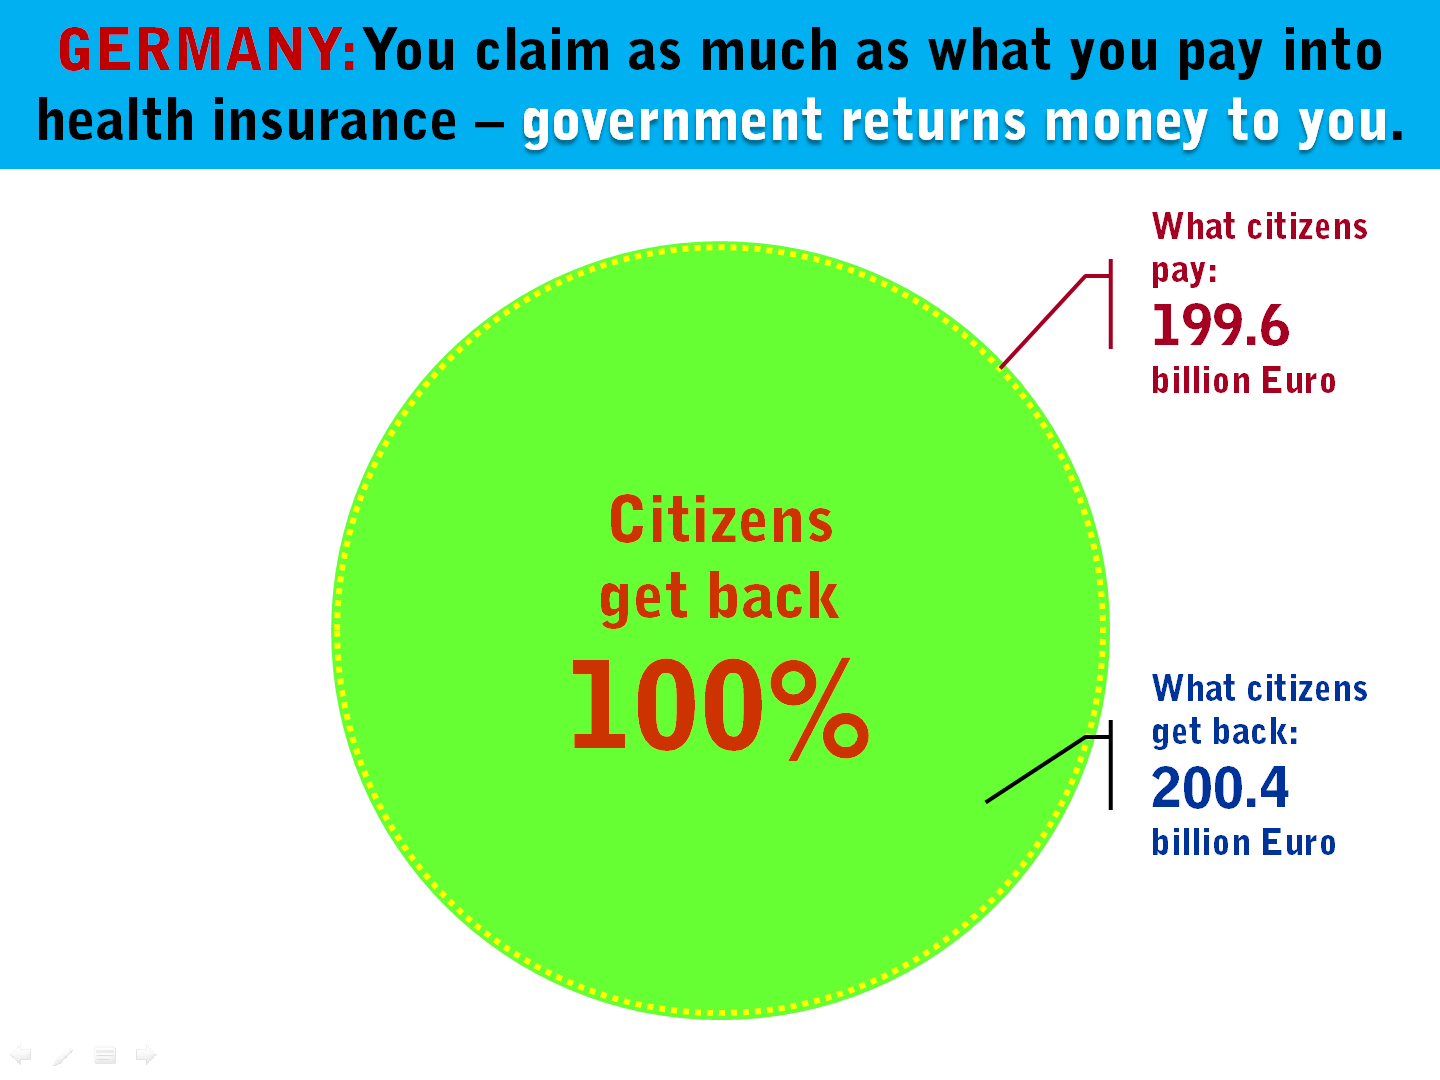 8 Germany Contribution Claim Health Insurance.png